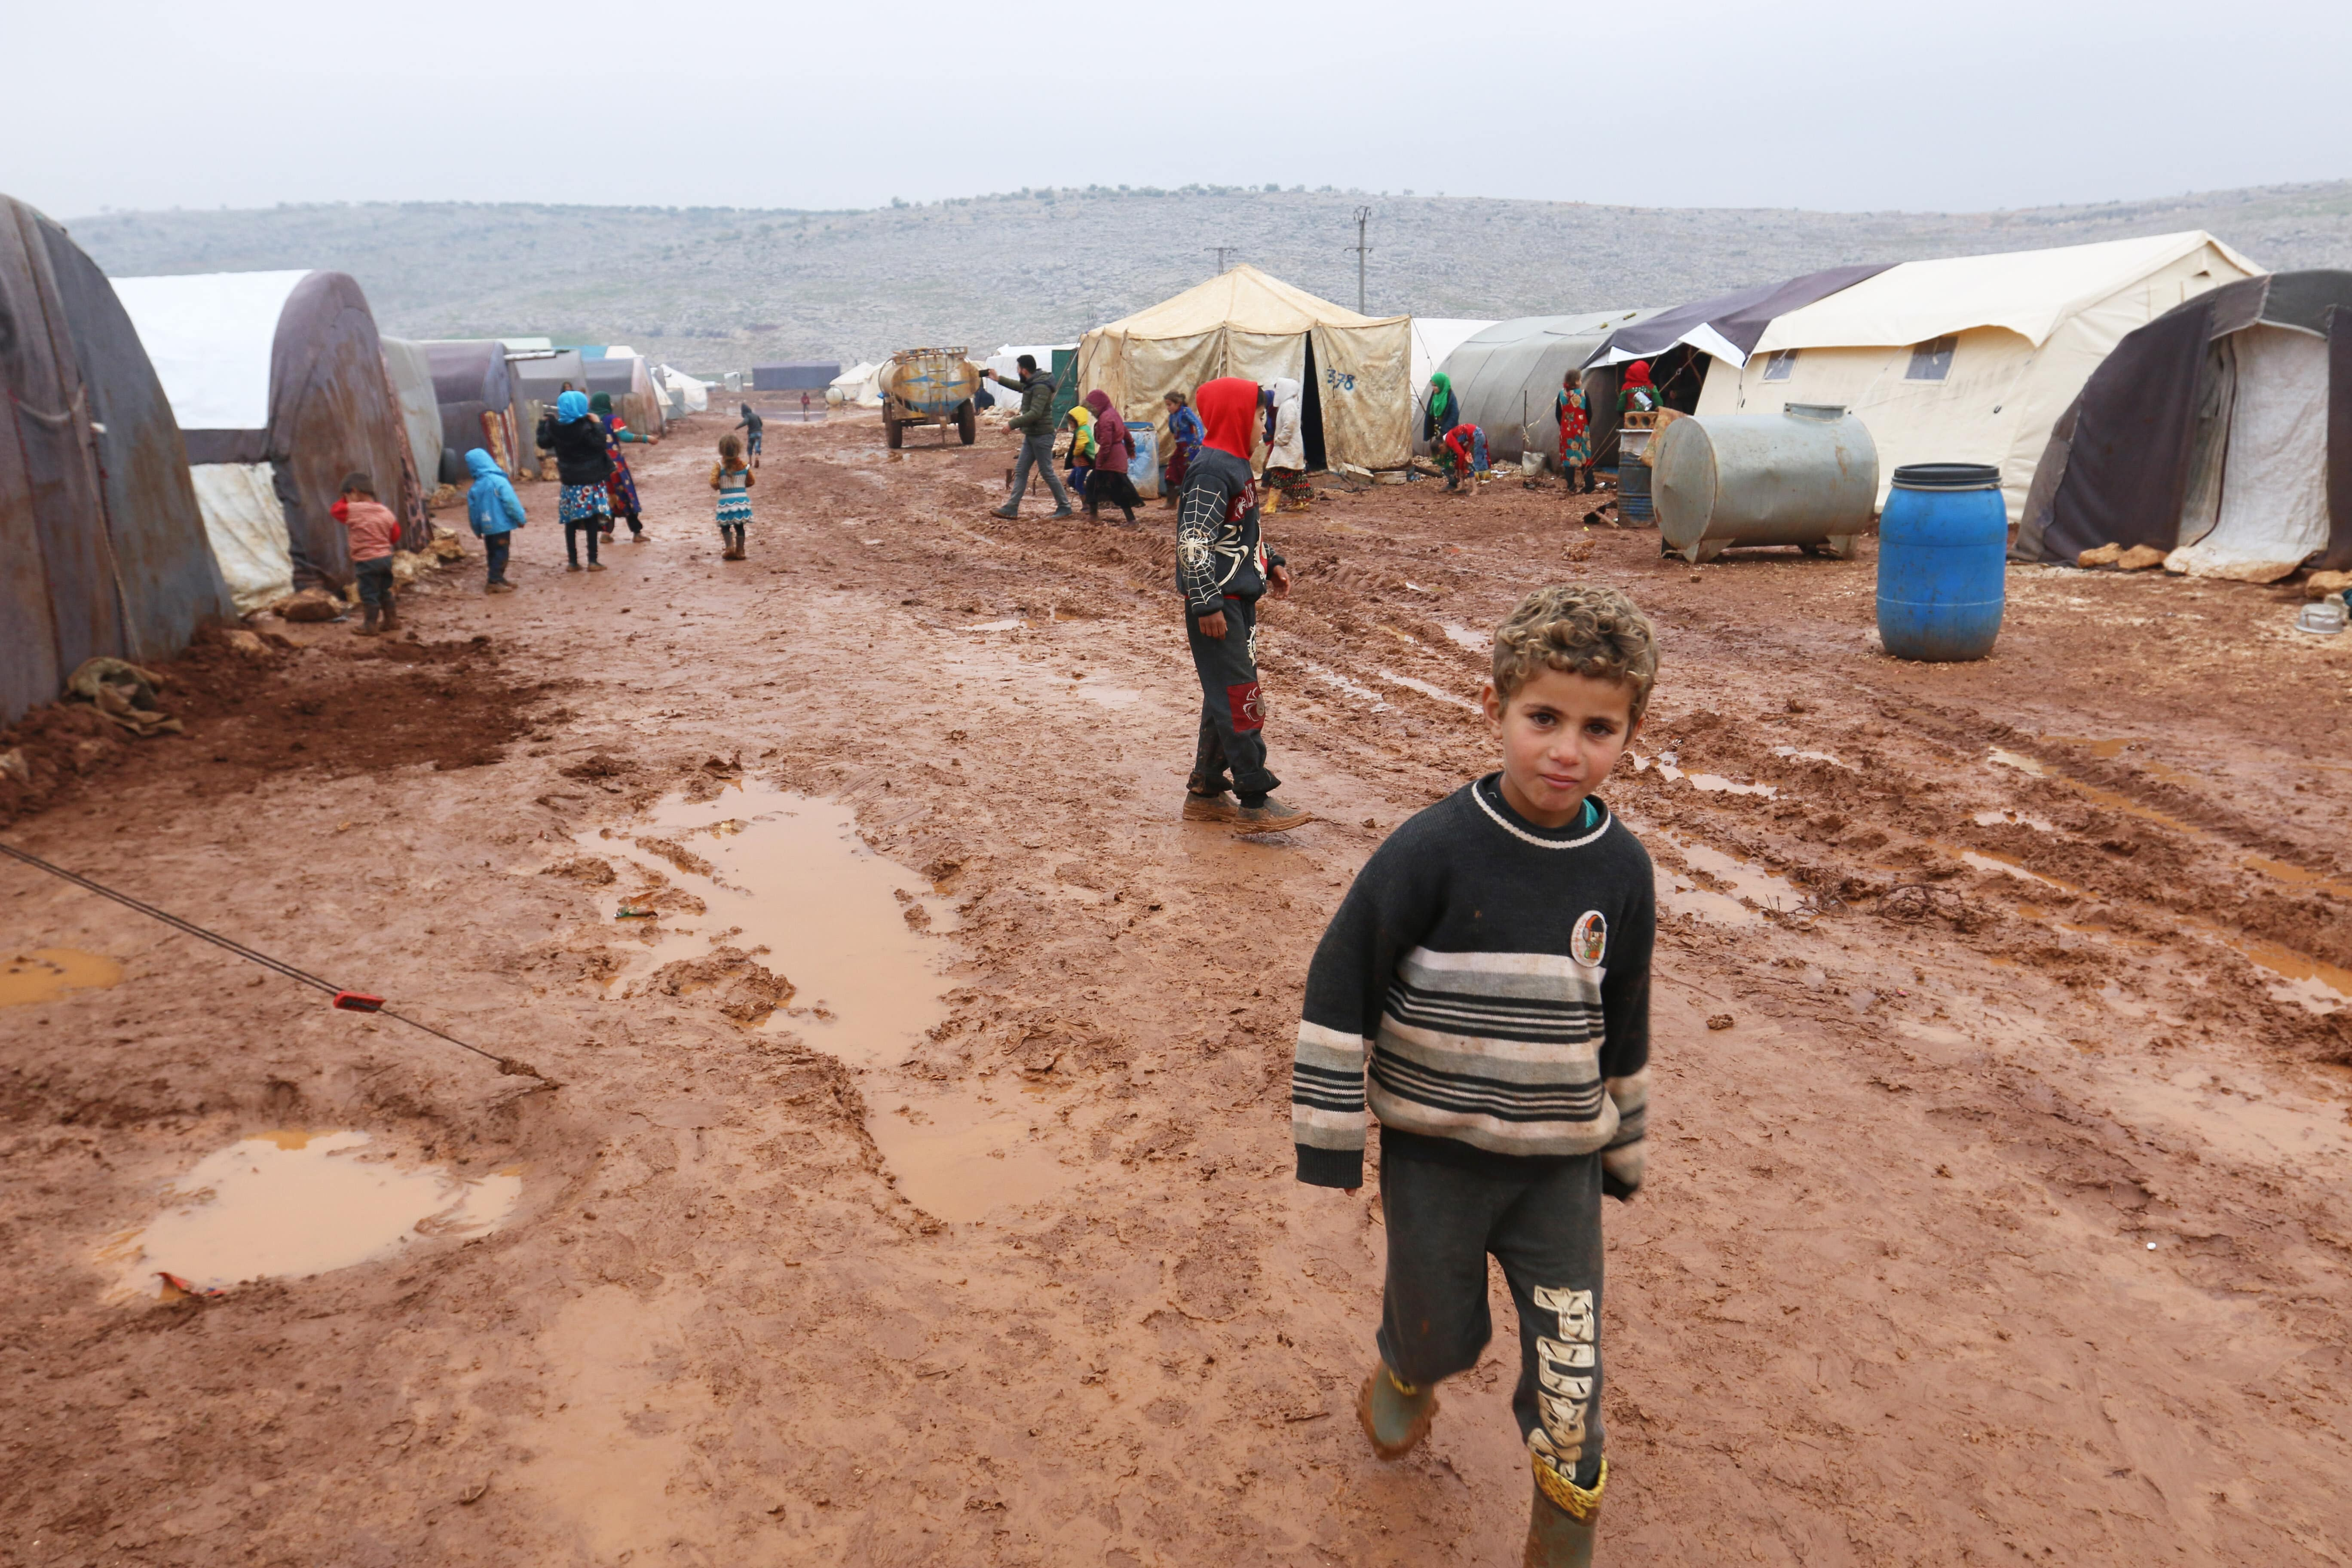 Thousands of Syrians have been without running water since last week